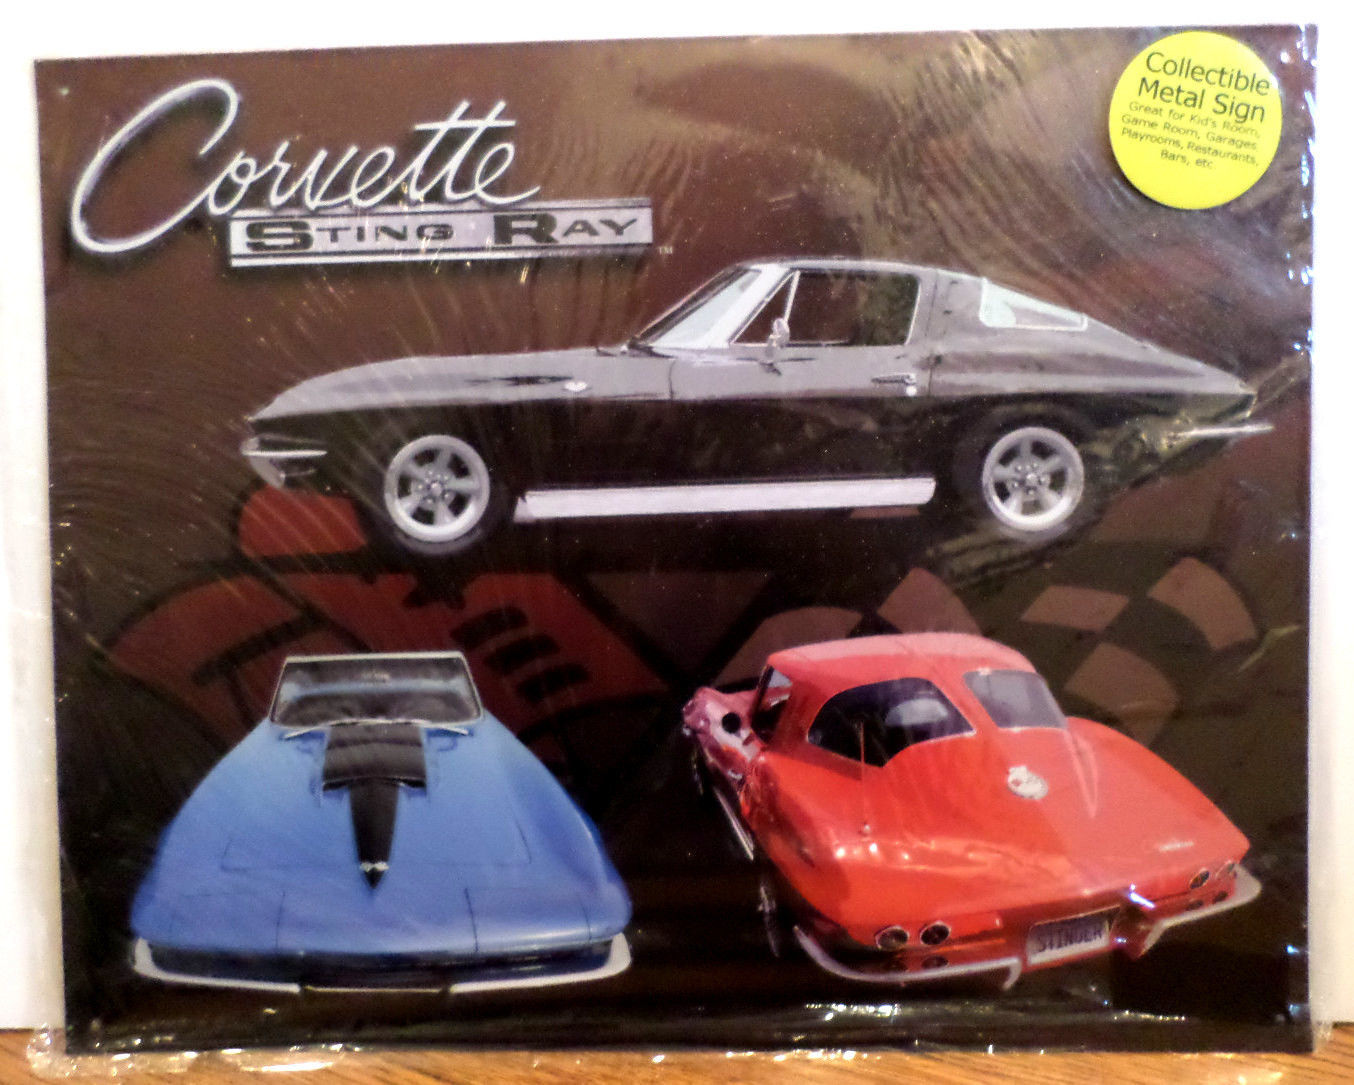 Corvette Man Cave Signs : Corvette sting ray home man cave work sign metal wall